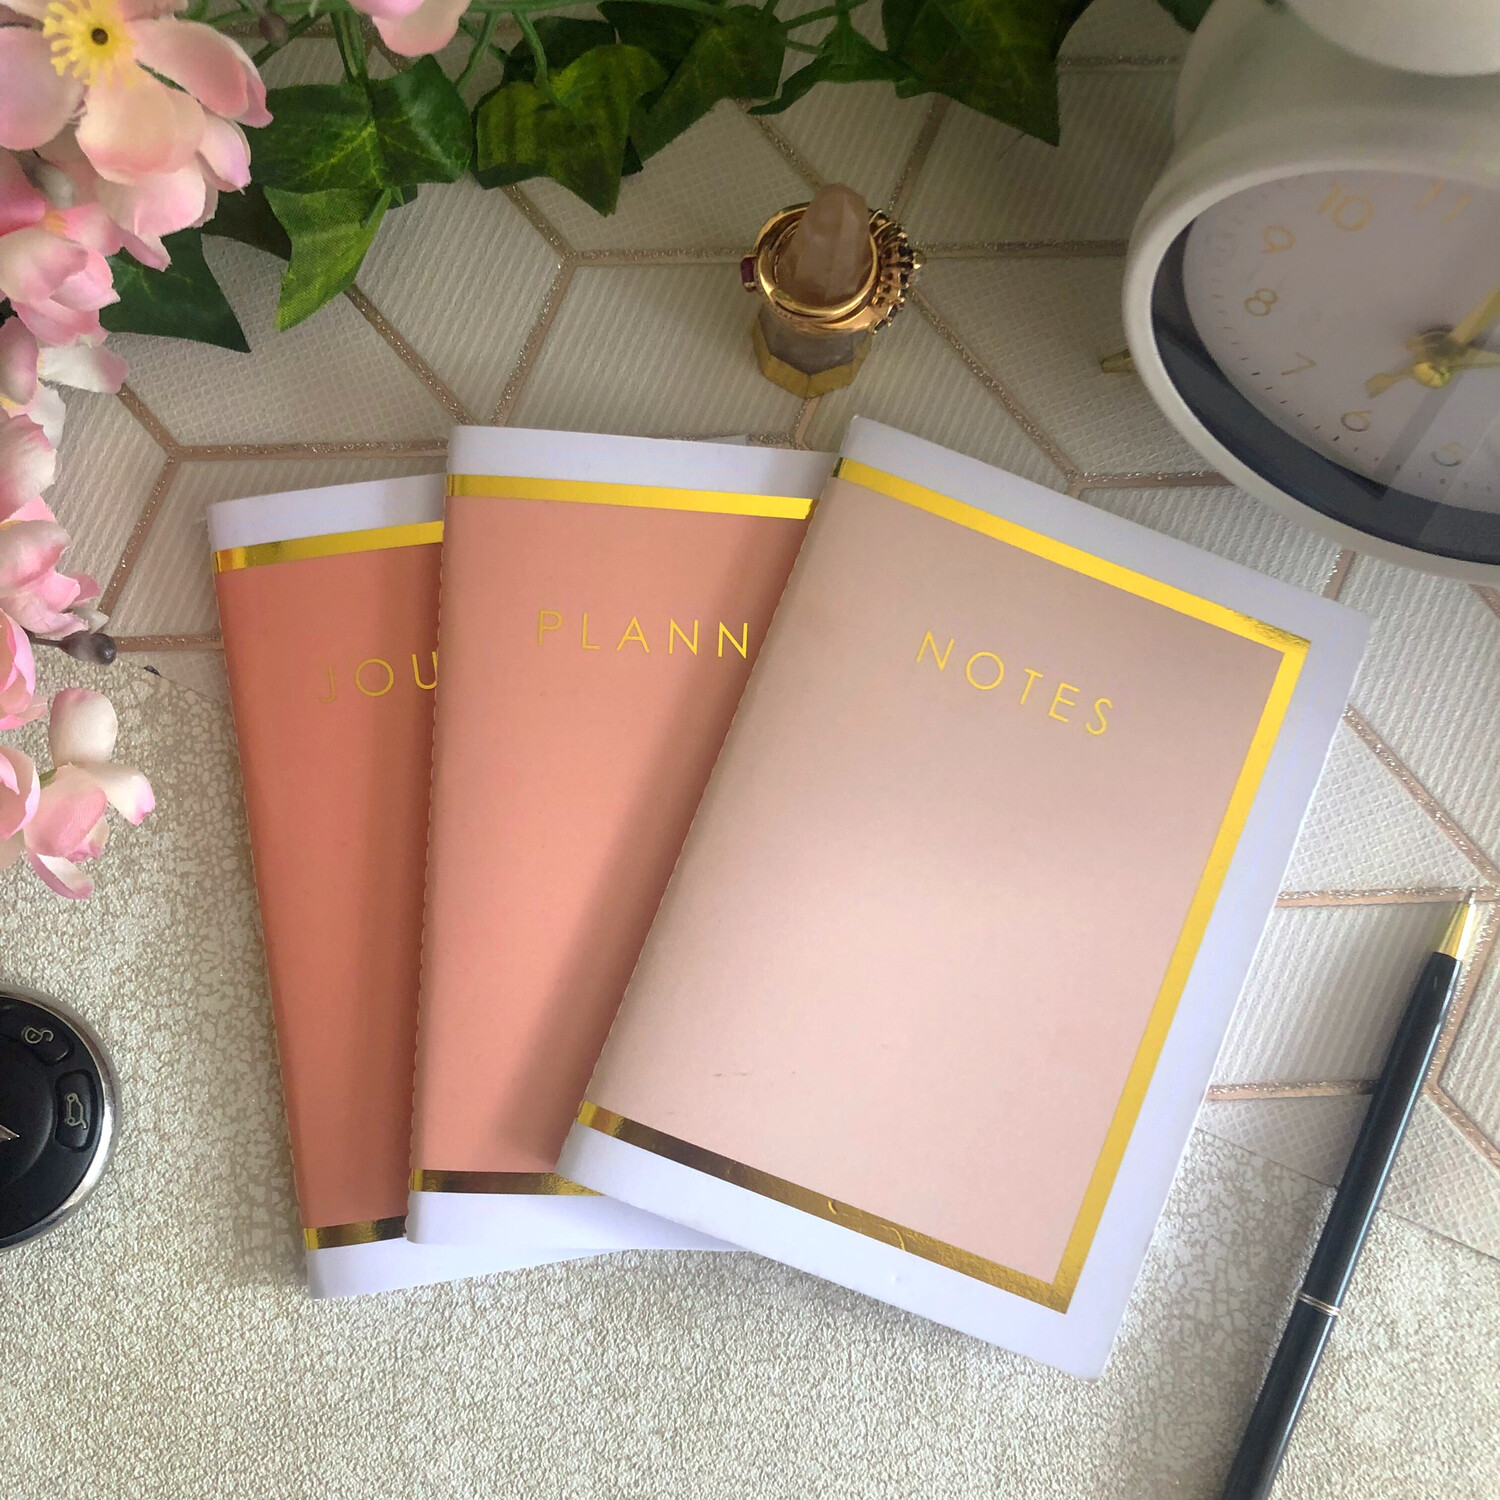 The Planner Collection